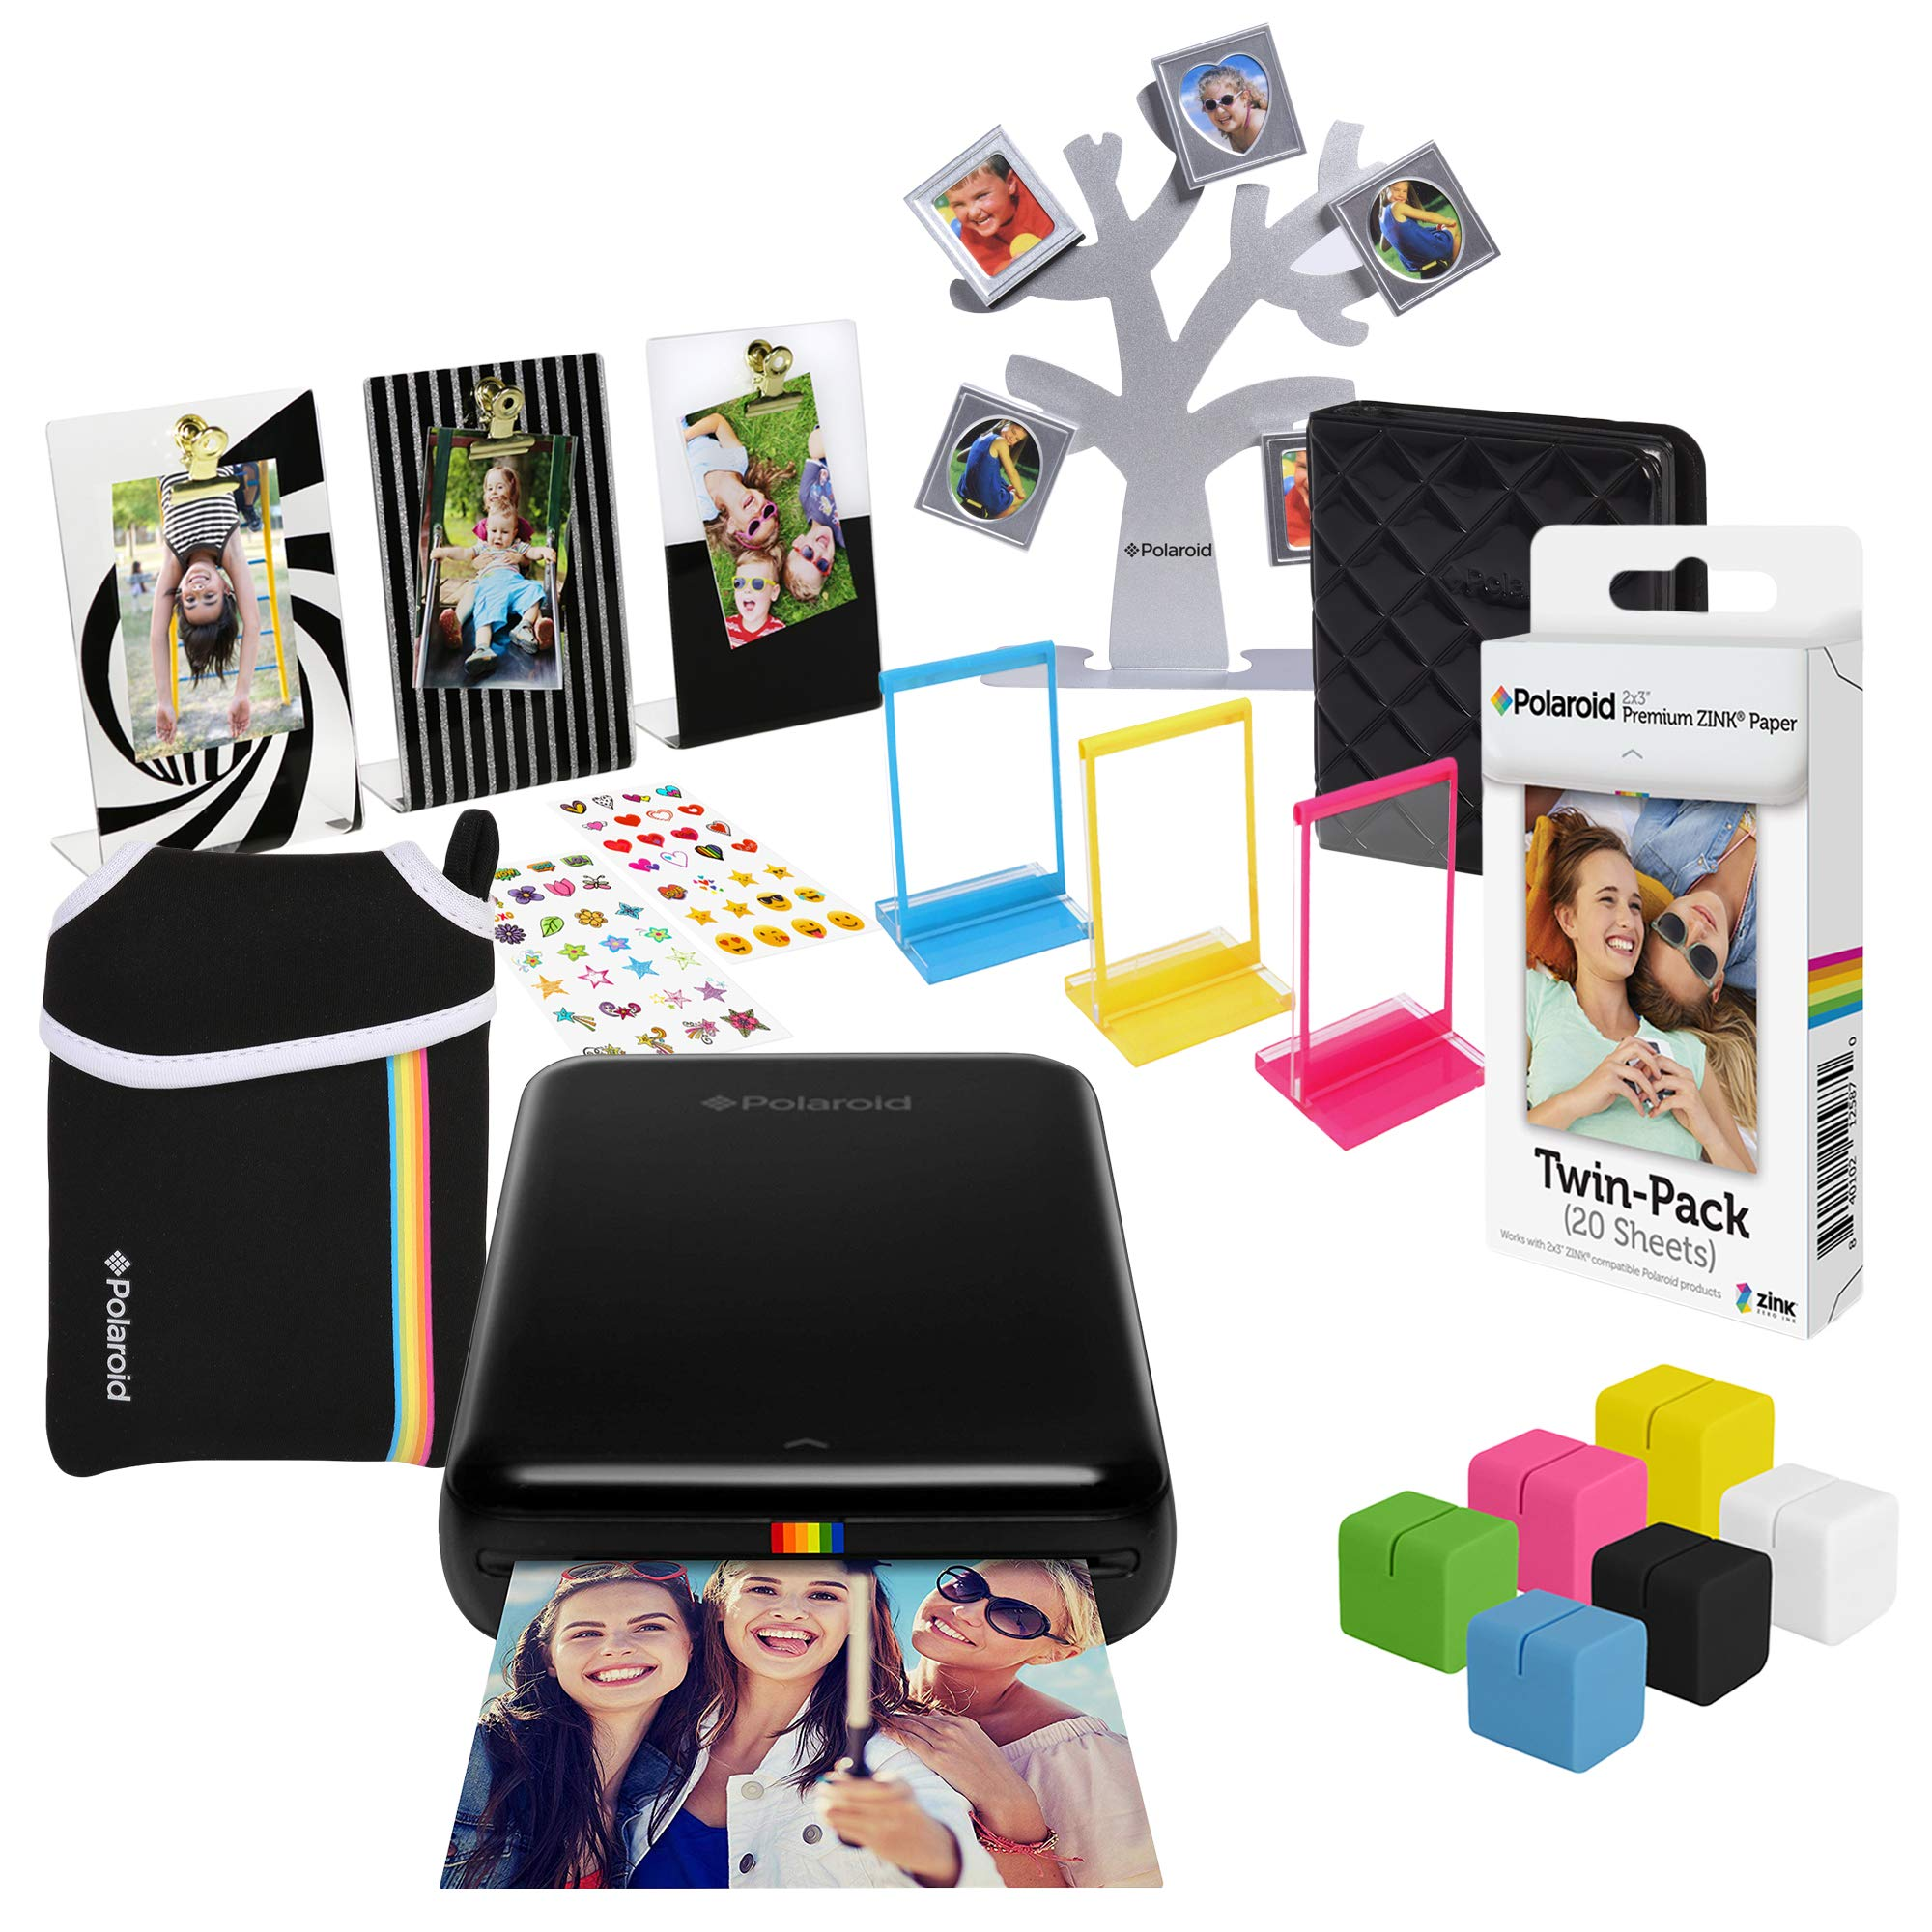 Polaroid Zip Wireless Photo Printer (Black) Ultimate Gift Bundle